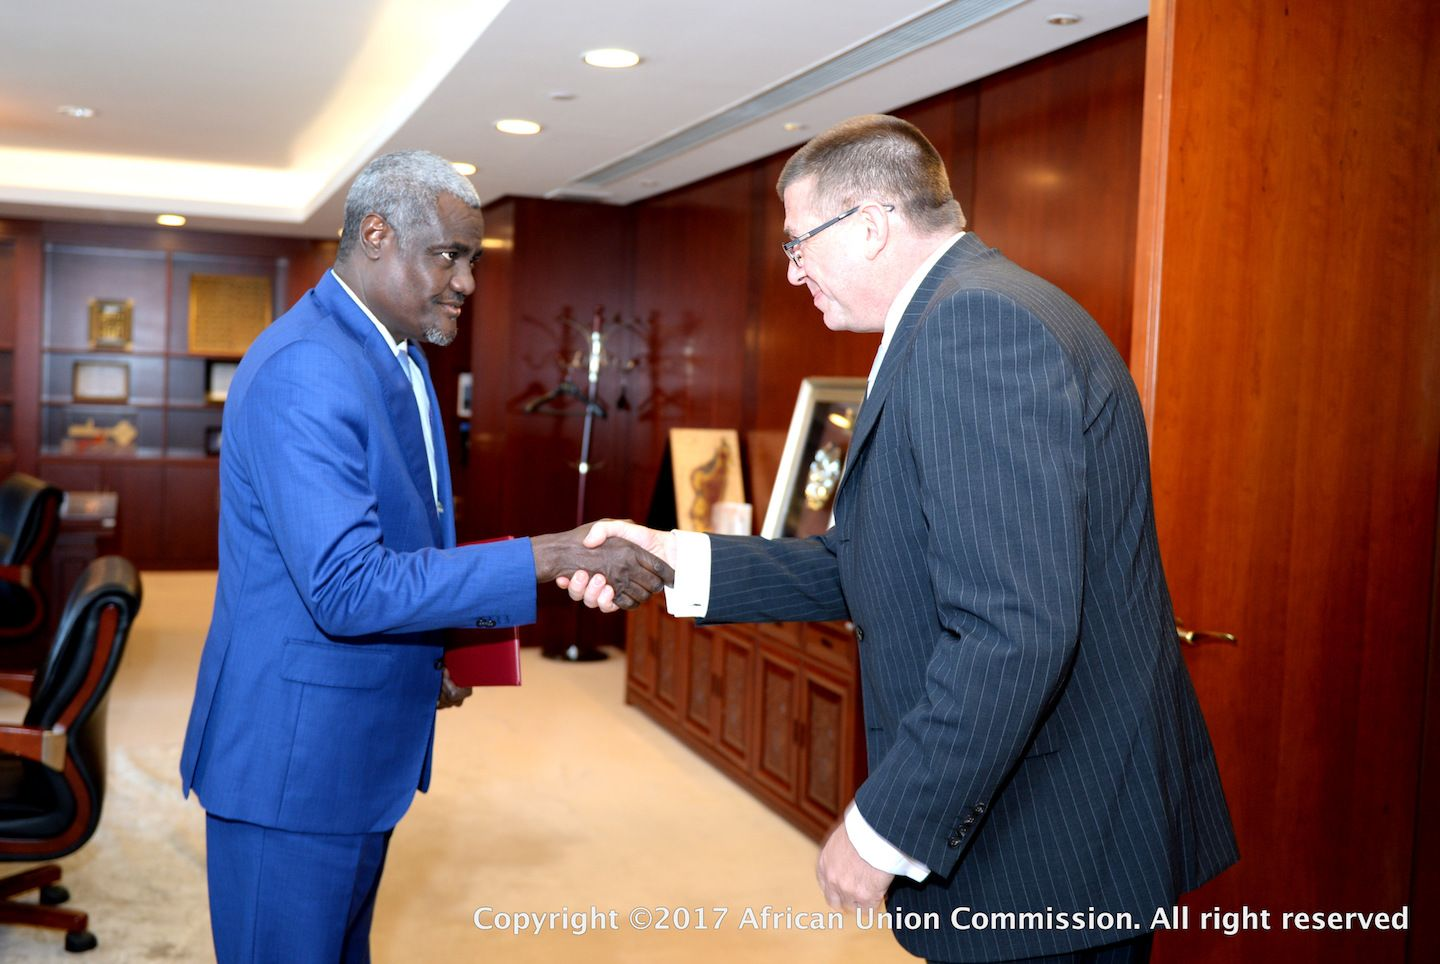 The Chairperson of the African Union Commission HE Moussa Faki Mahamat welcomed the incoming Polish ambassador accredited to the African Union Commission, HE Aleksander Kropiwnicki.